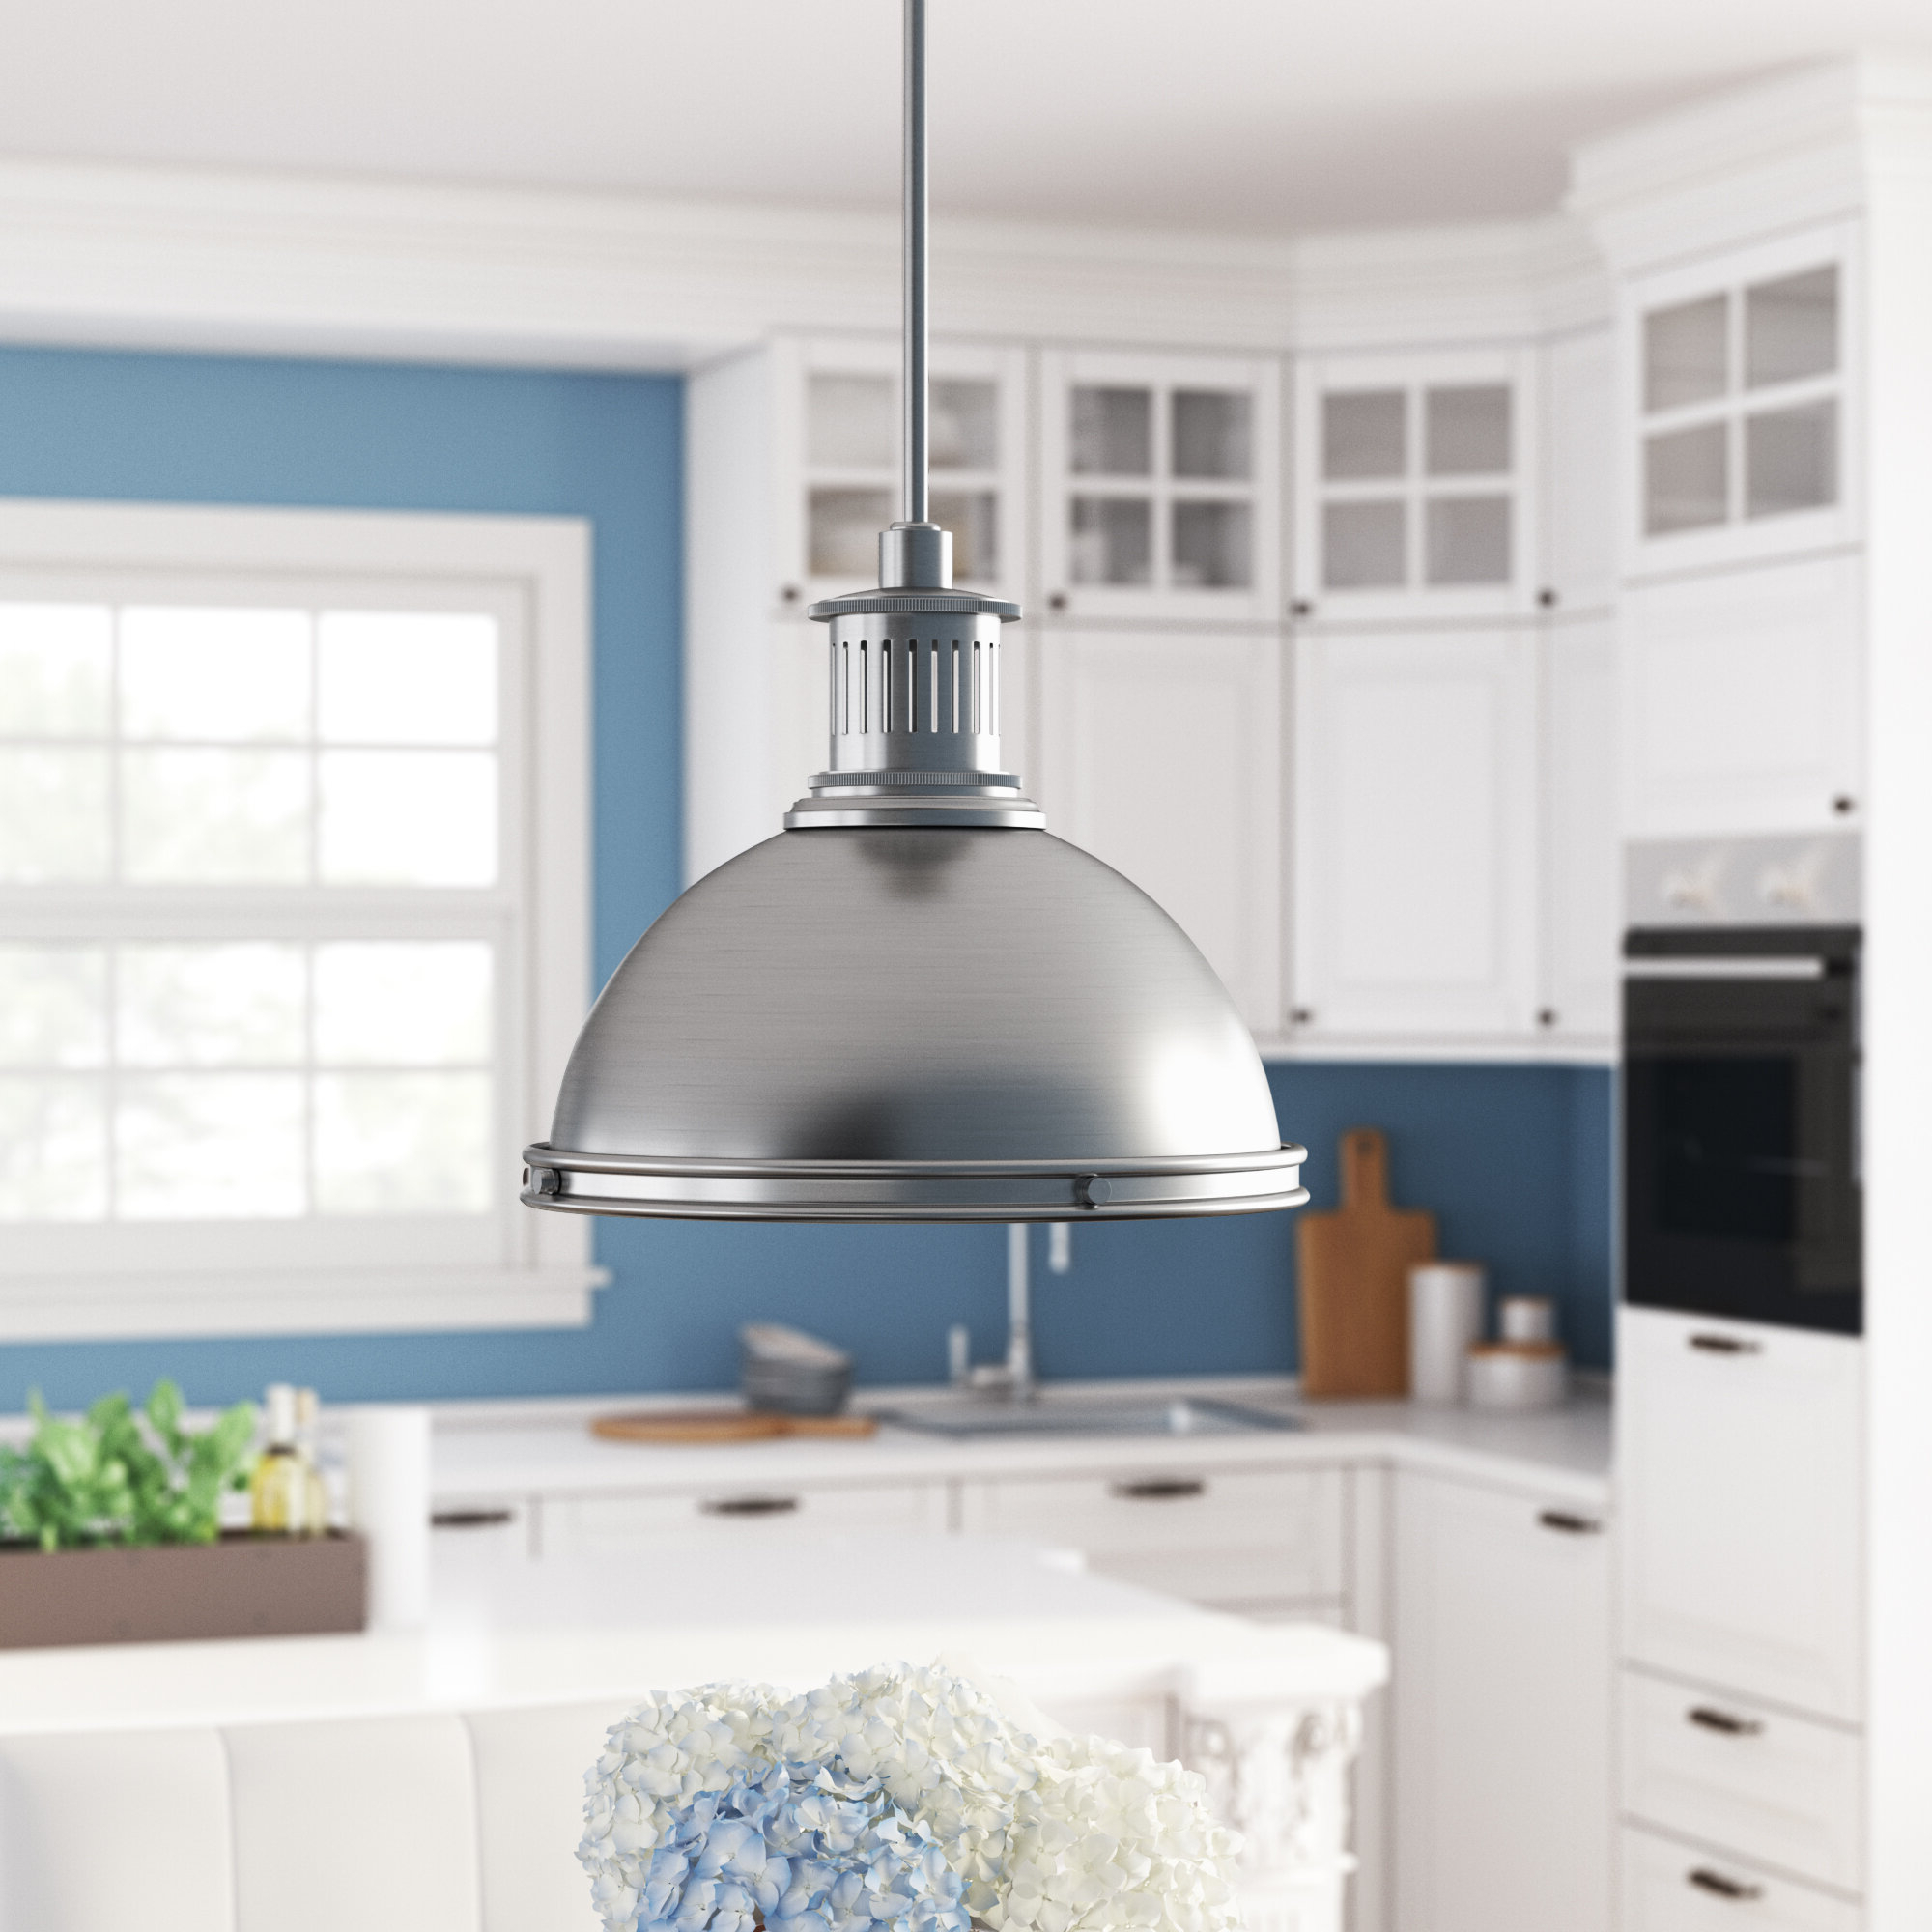 Amara 2 Light Dome Pendants Within Most Popular Ninette 1 Light Dome Pendant (View 10 of 25)